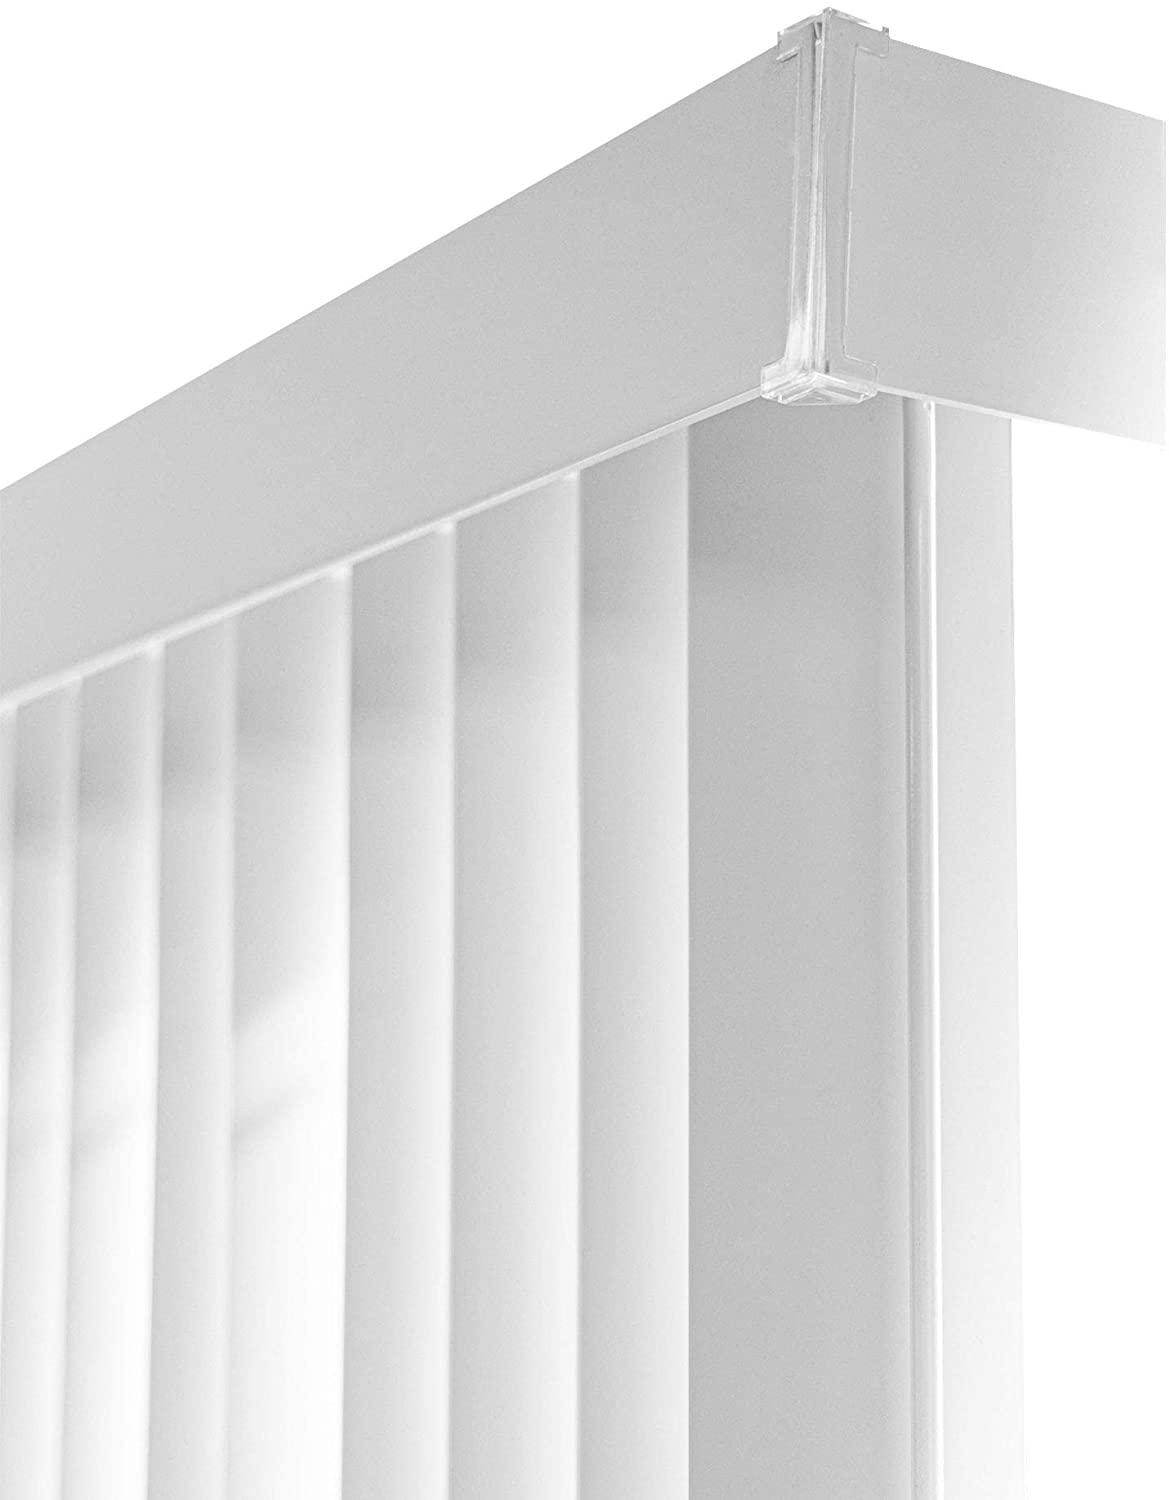 "CHICOLOGY Cordless Vertical Blinds Patio Door or Large Window Shade, 78"" W X 84"" H, Oxford White Vinyl"